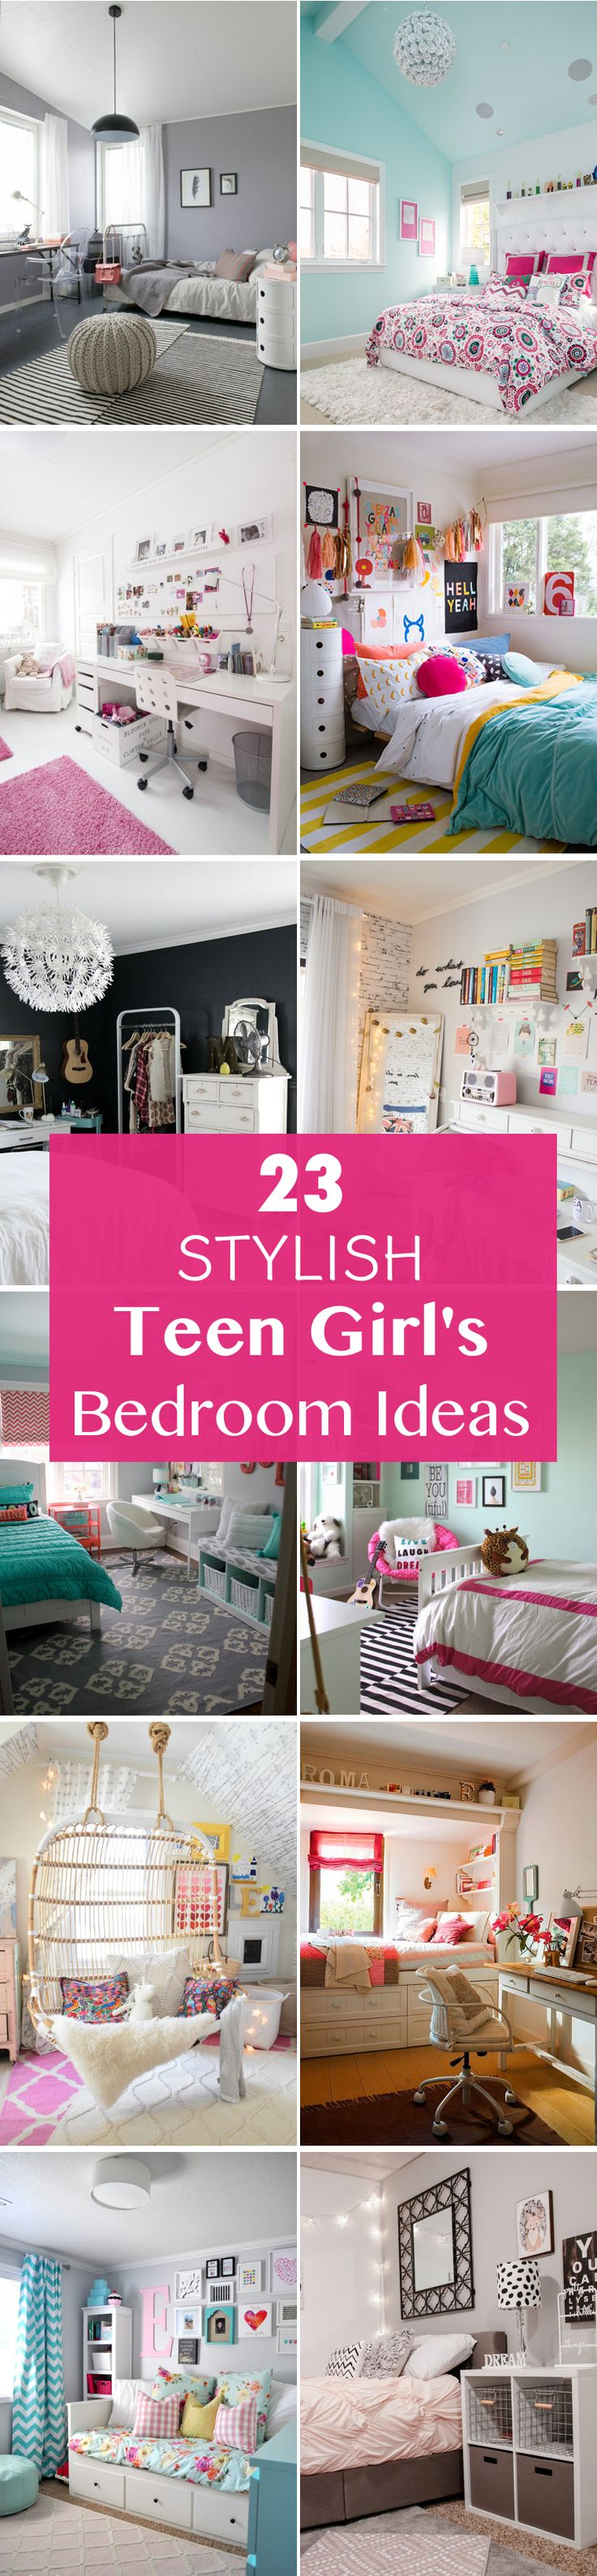 Bedrooms designs for teenagers - 23 Stylish Teen Girl S Bedroom Ideas